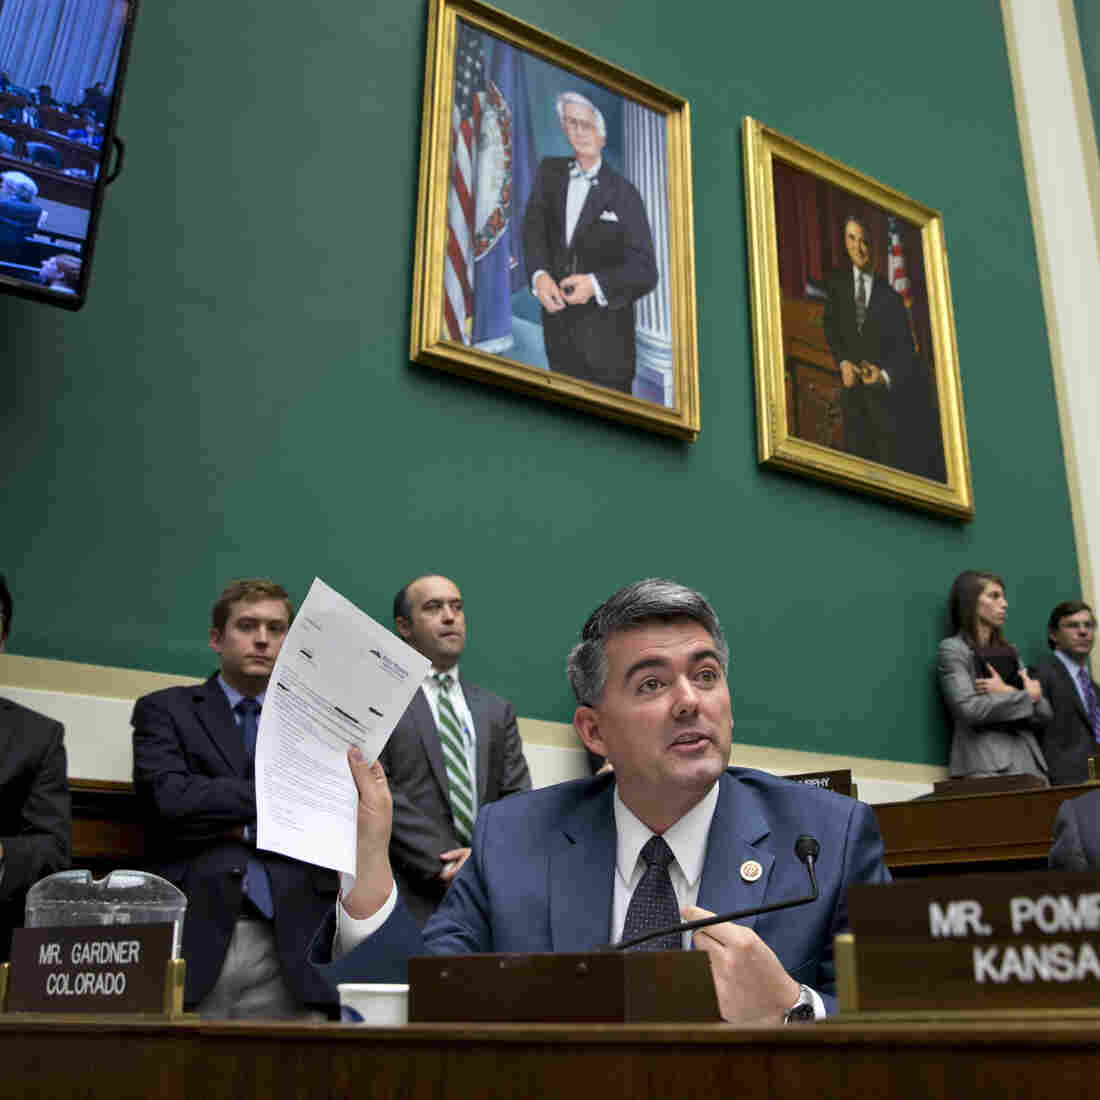 One person who got a letter canceling his health insurance was Rep. Cory Gardner, R-Colo. He holds up the letter during a congressional hearing Wednesday on insurance problems. He says his family chose to buy private insurance rather than use the congressional plan.